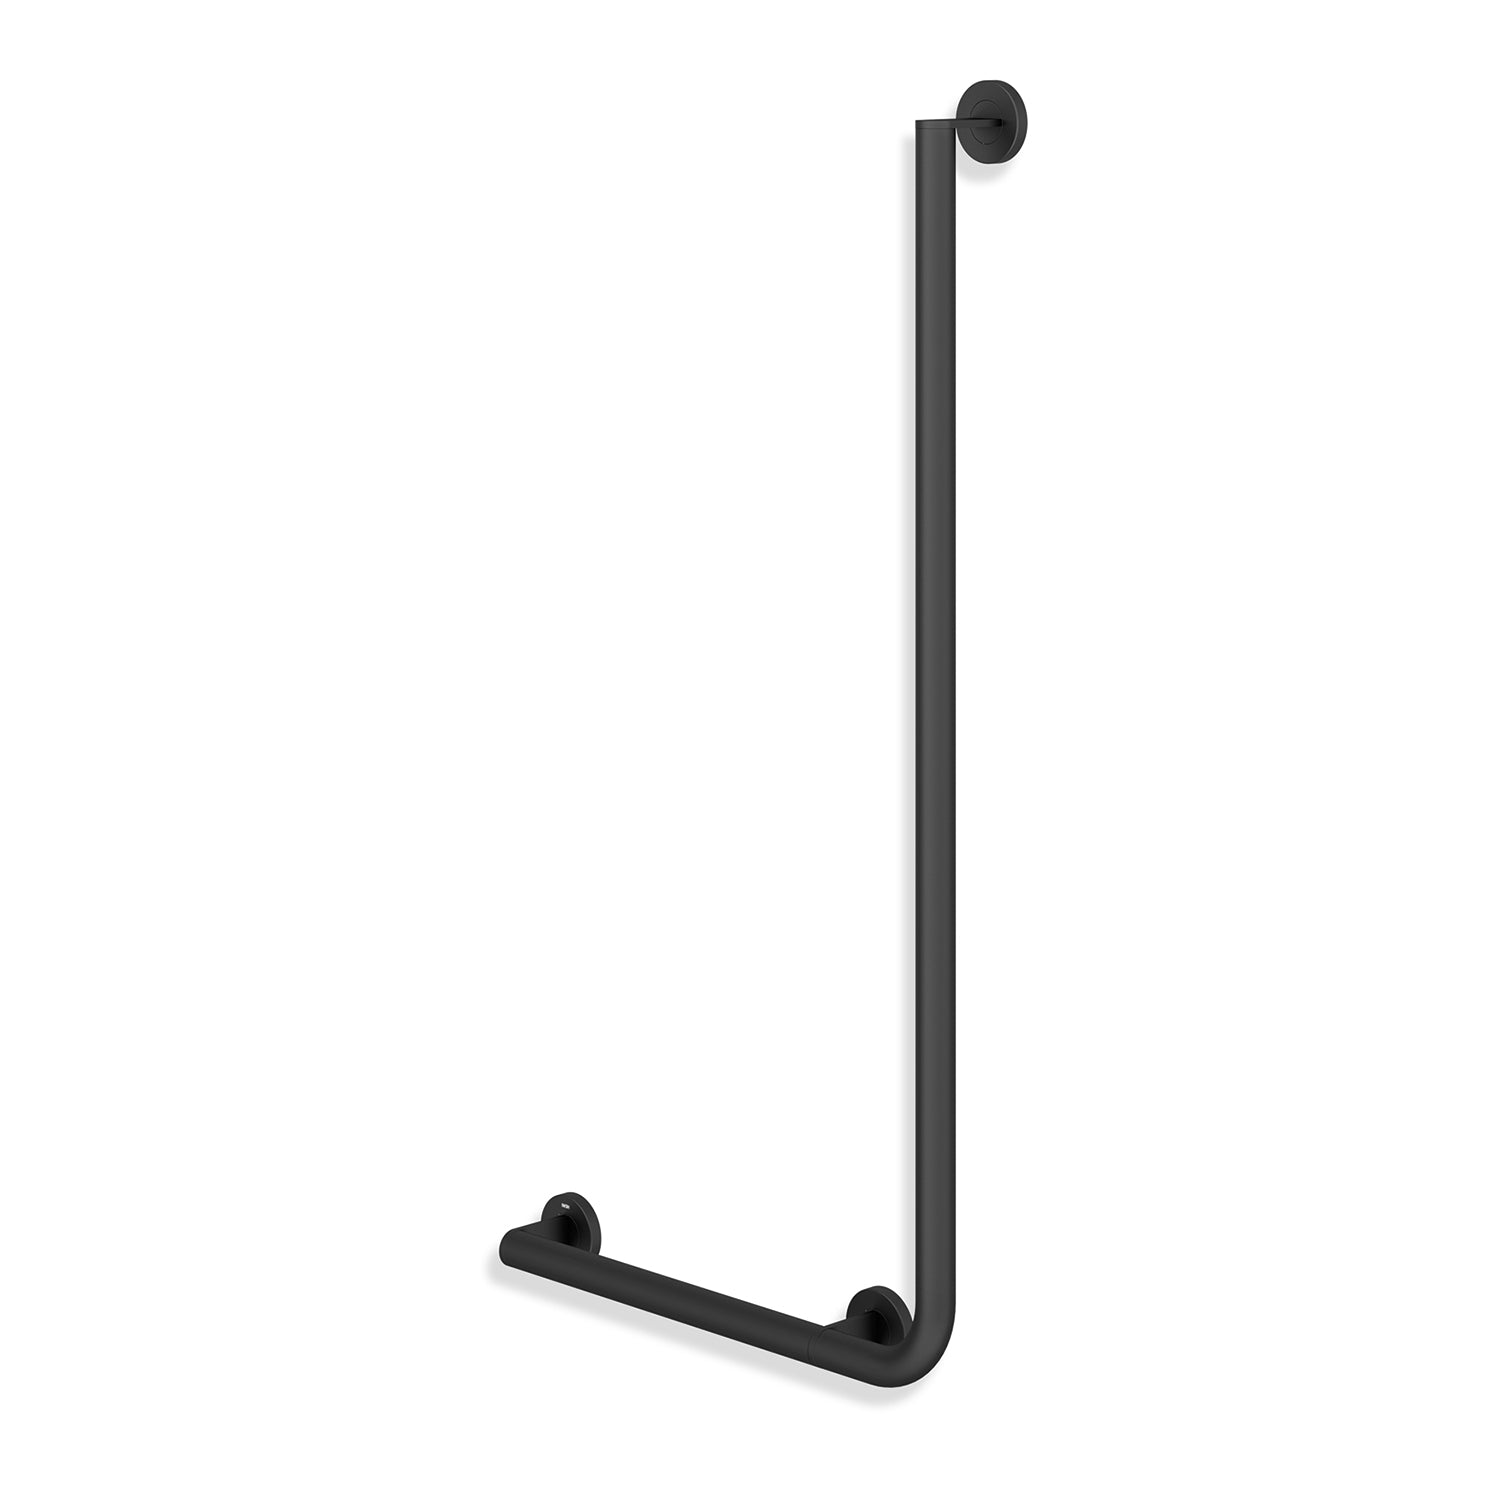 1000x500mm Left Handed Freestyle L Shaped Grab Rail with a matt black finish on a white background